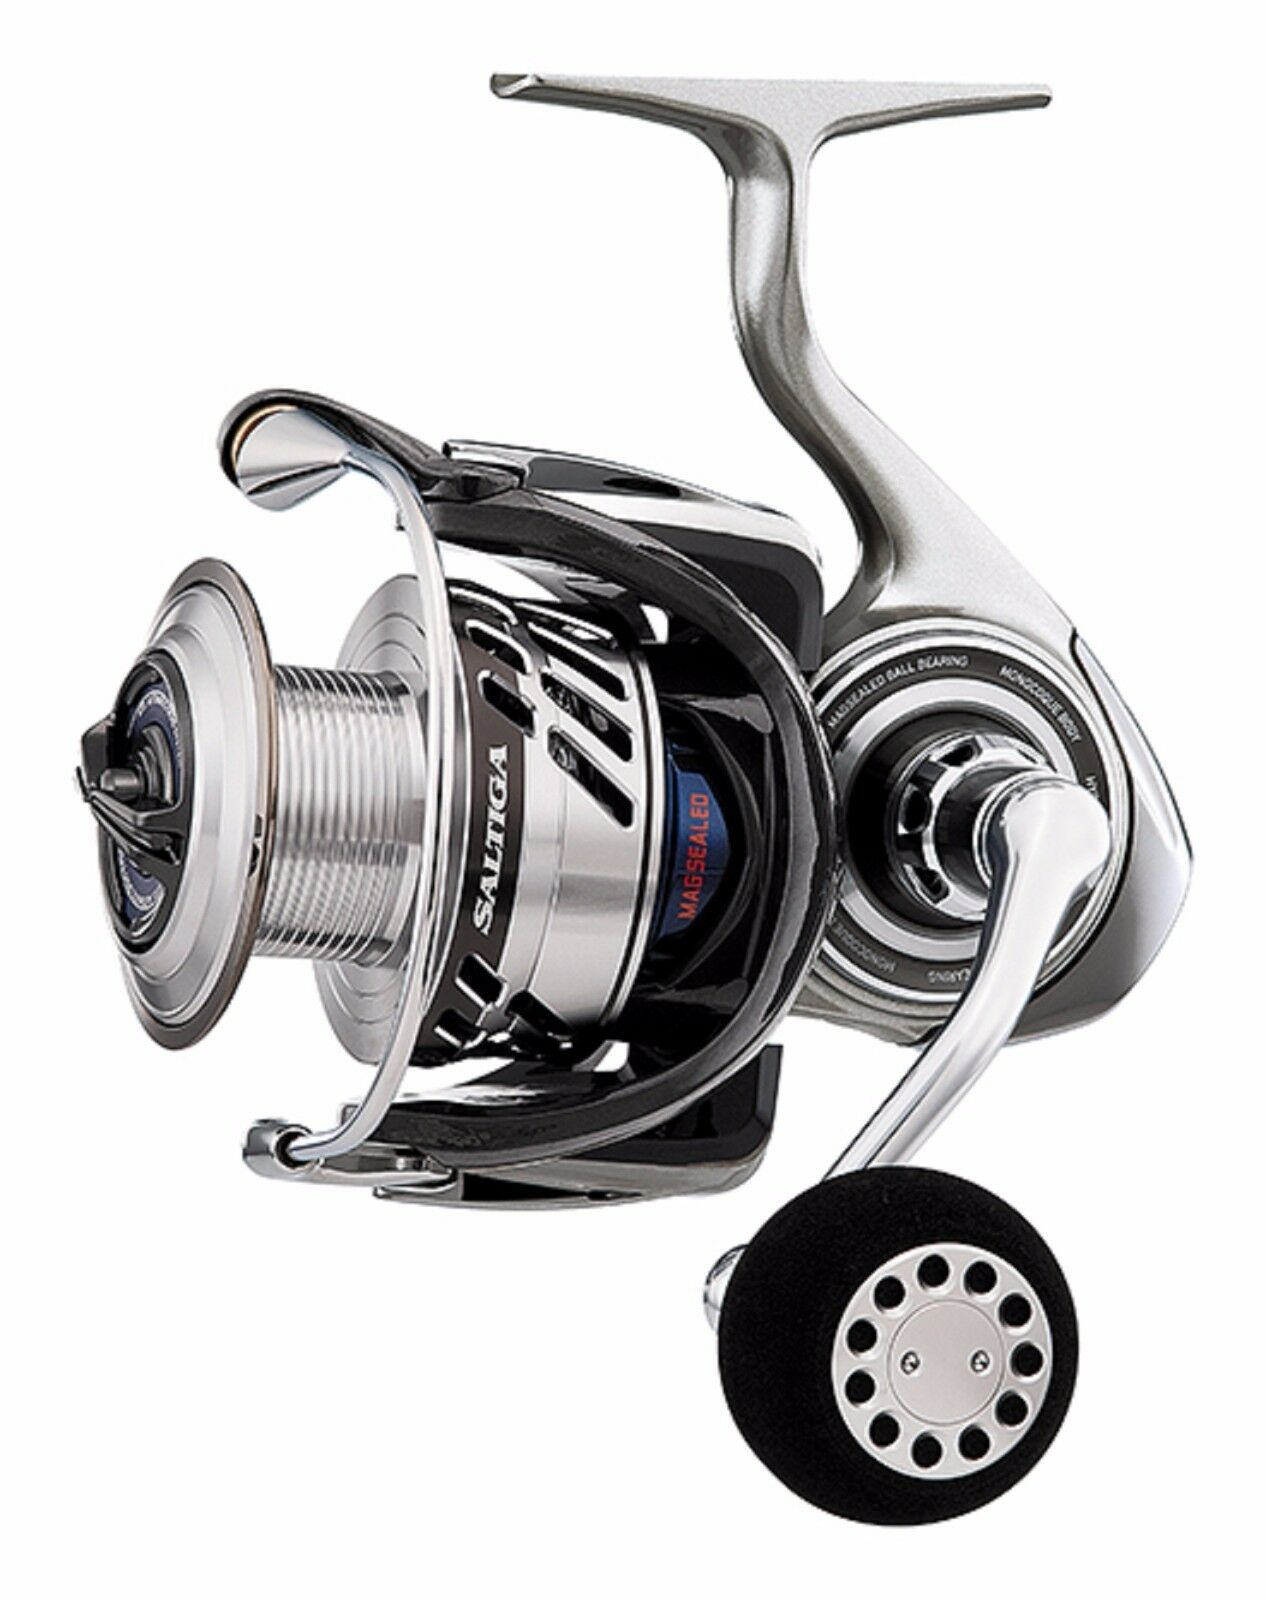 Daiwa SALTIGA BAY JIGGING SPINNING Brand New FREE FAST Ship Made JAPAN